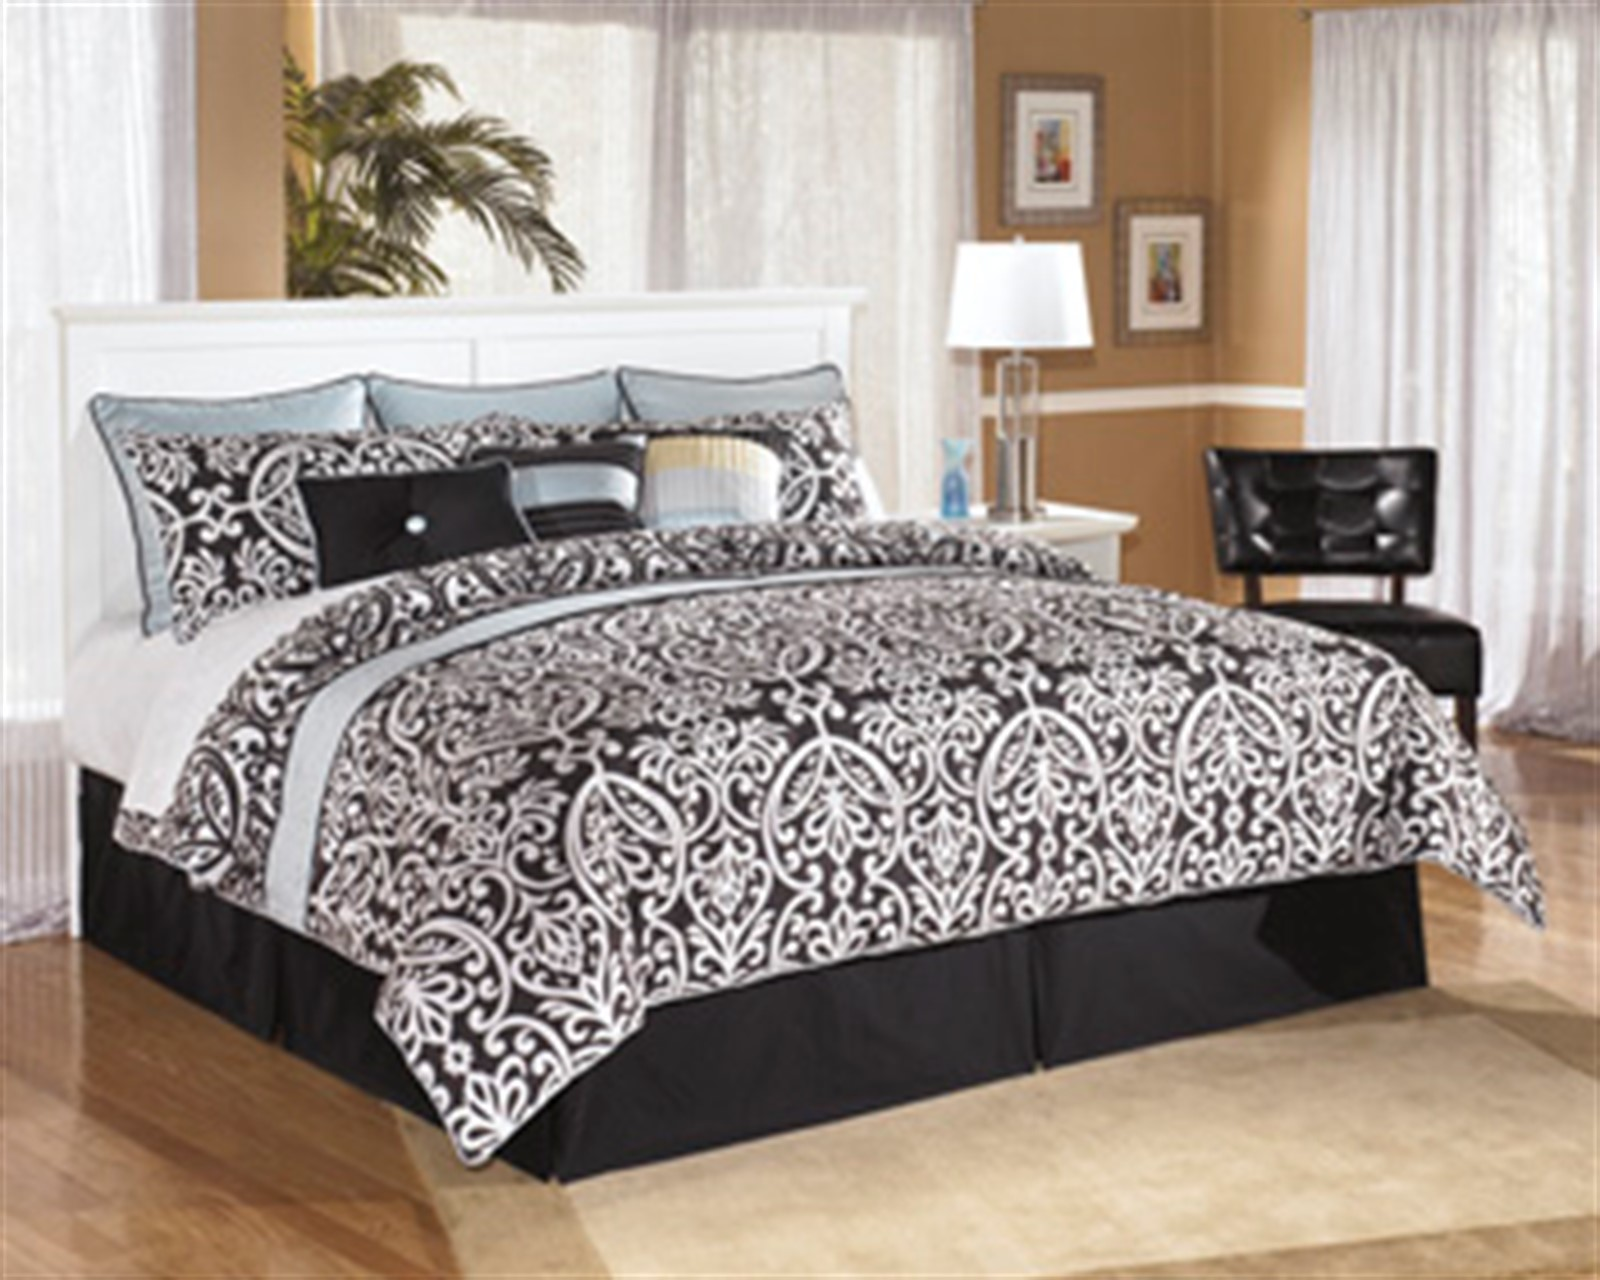 Bostwick Shoals White King Bed